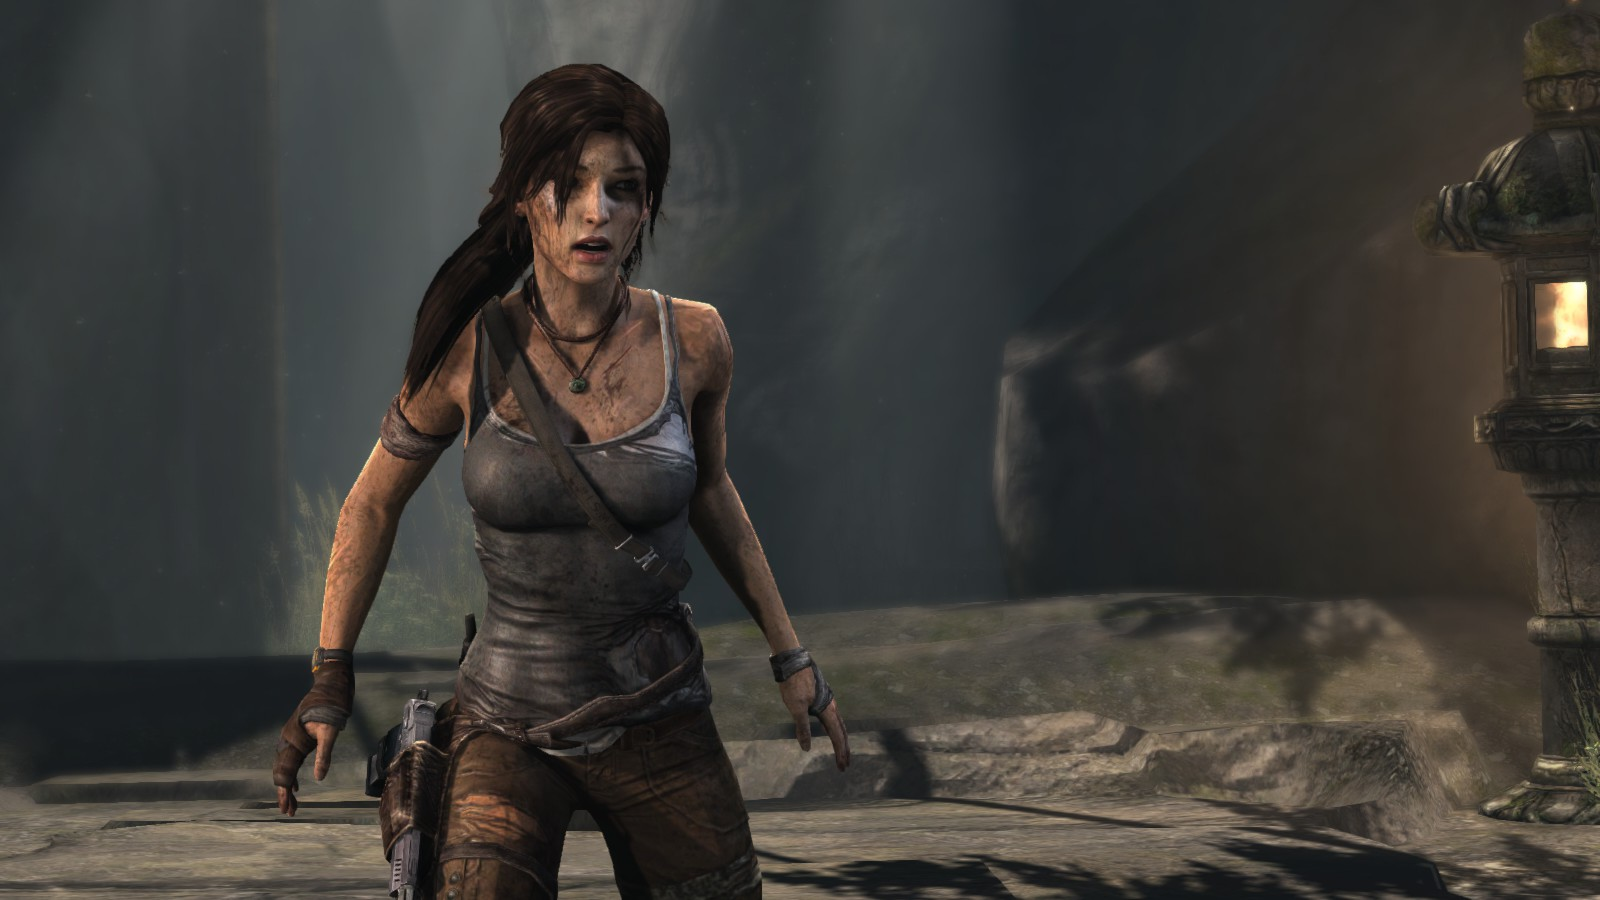 This is the new Lara Croft in the 2013 video game.